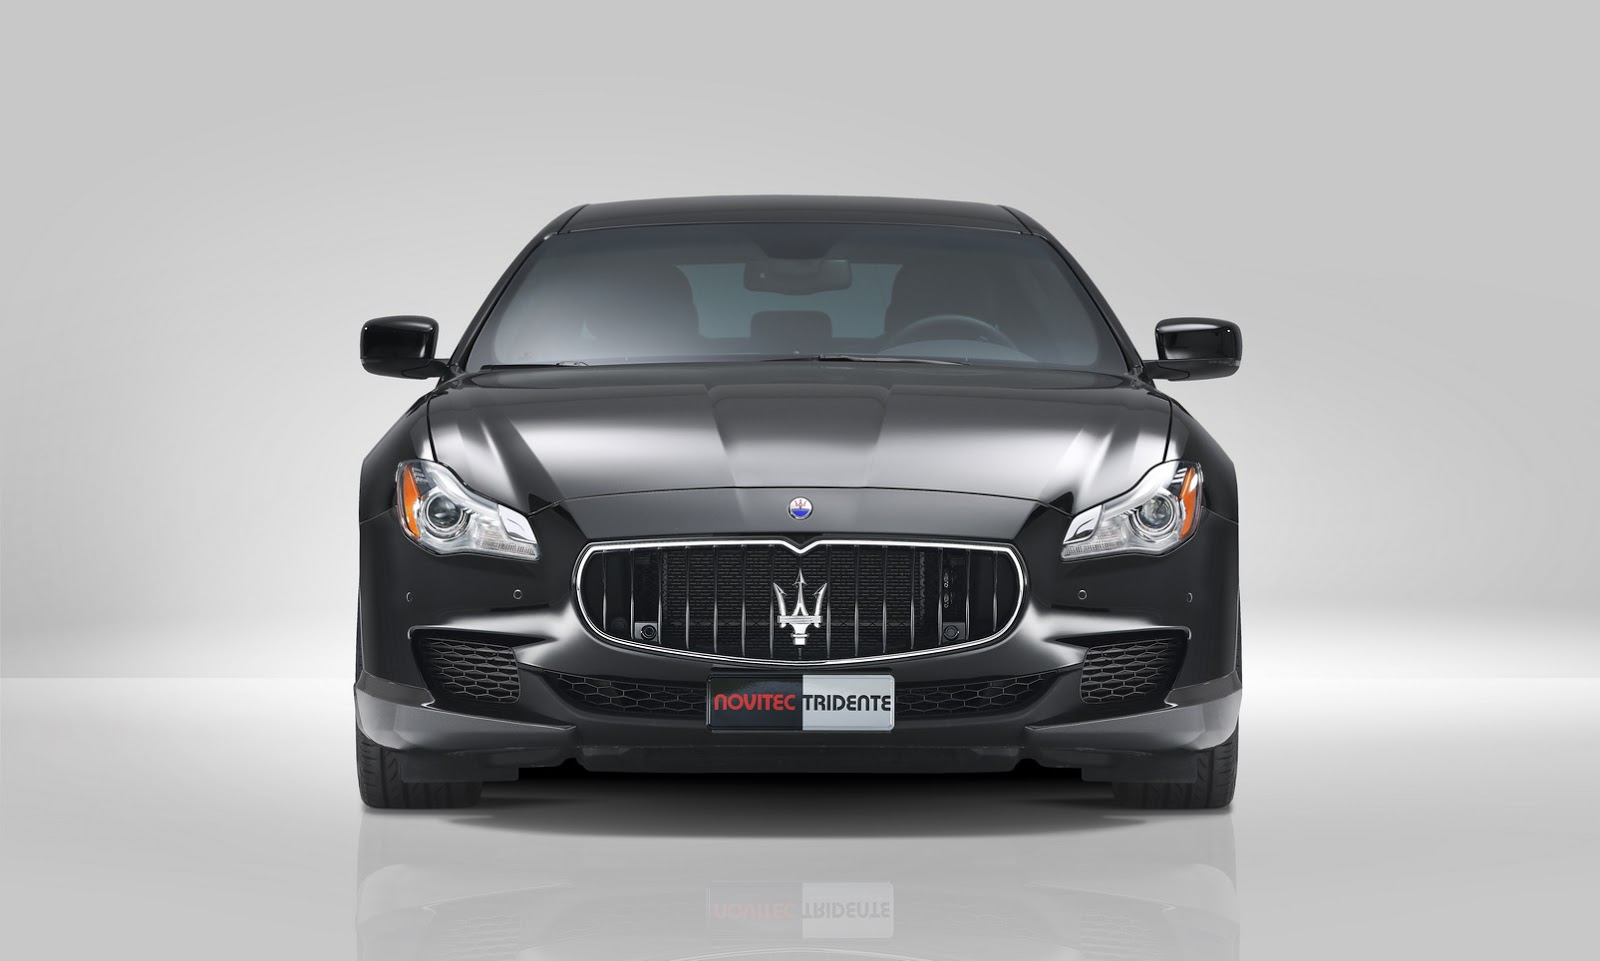 novitec powers up new maserati quattroporte carscoops